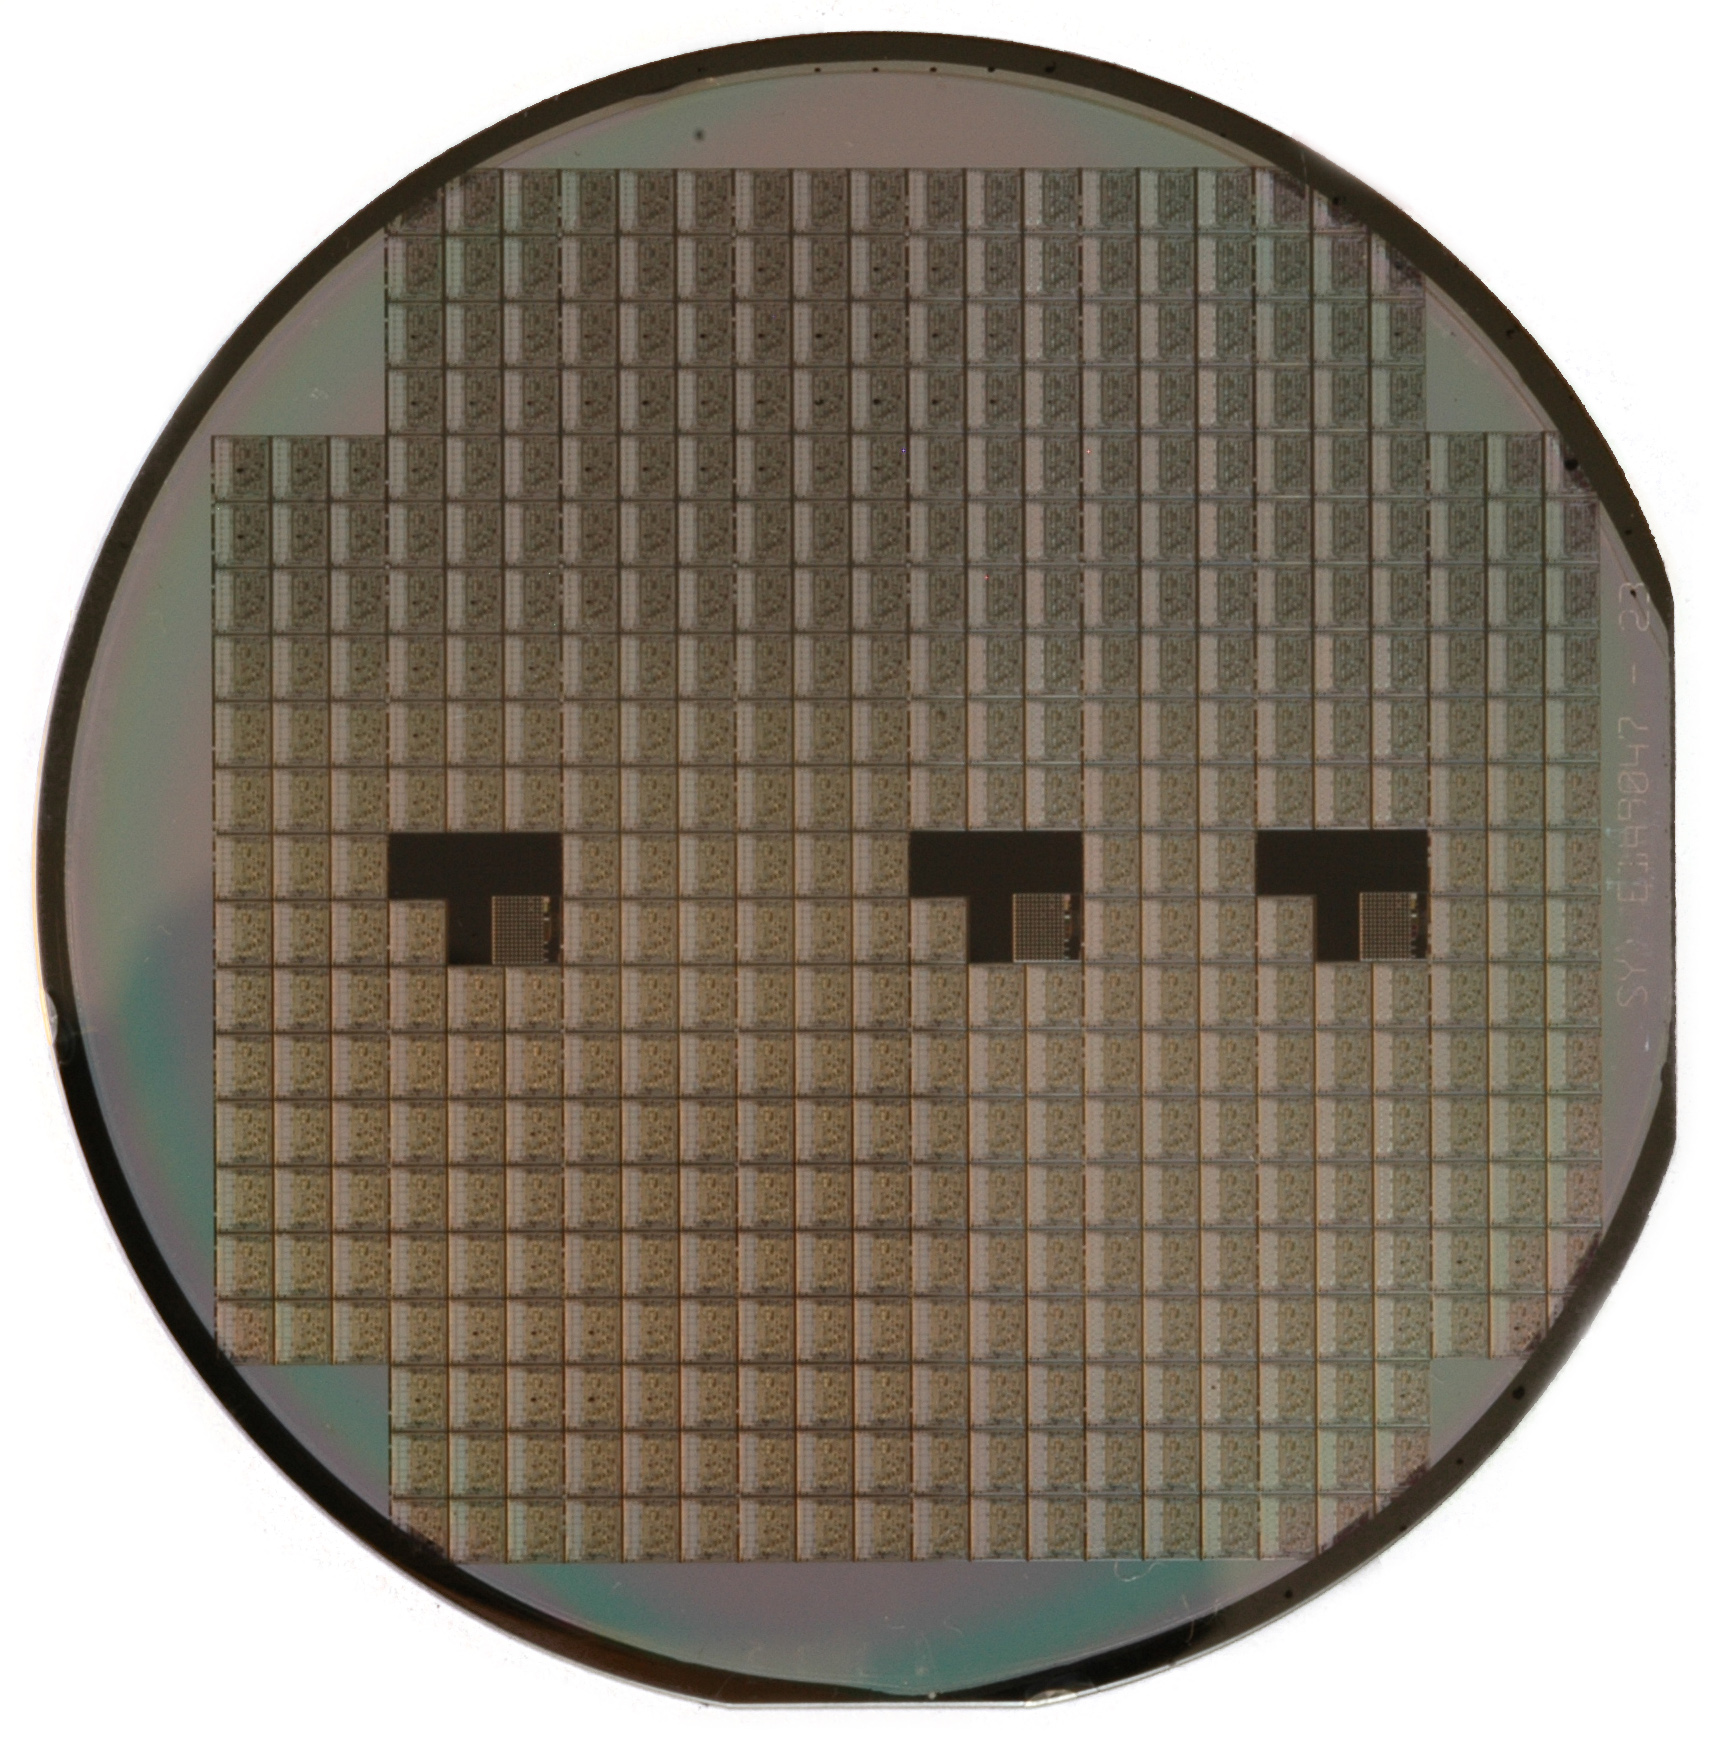 Semiconductor Wafer Cad : Cad for simple d metal wood projects